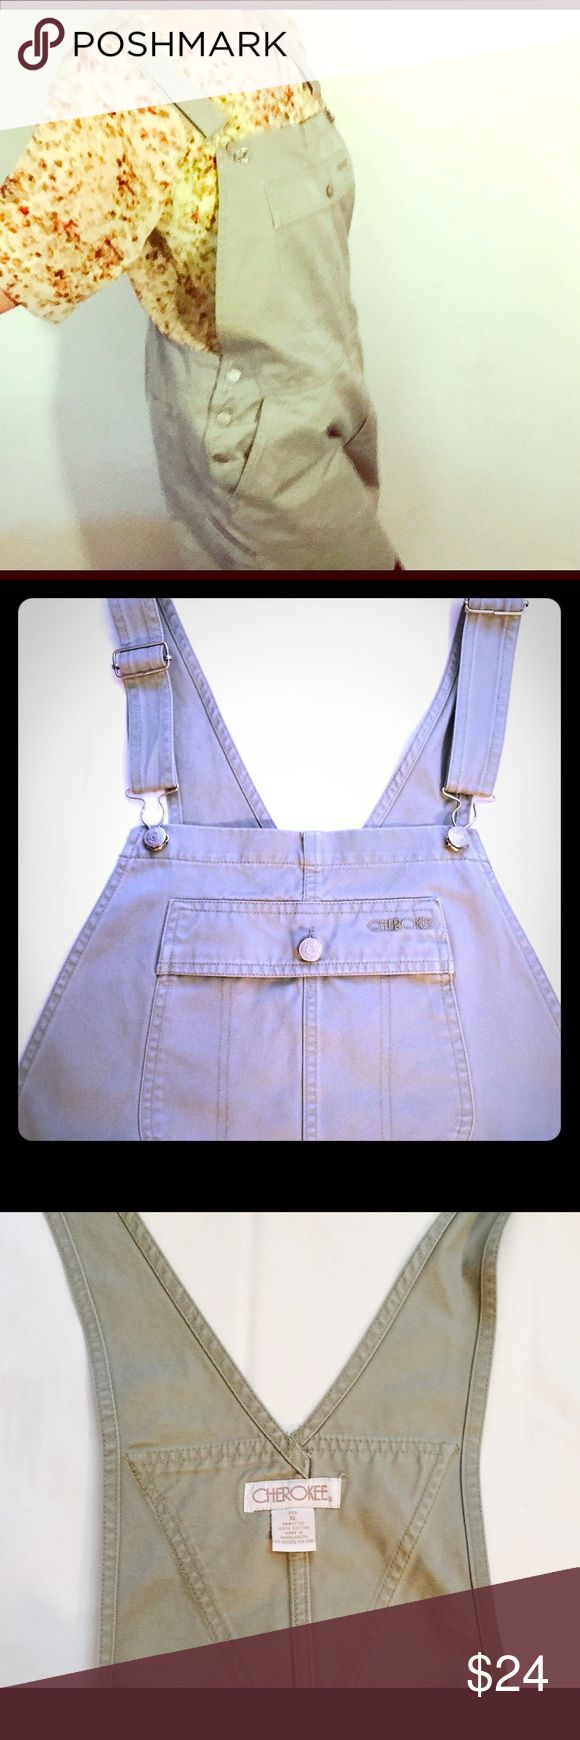 🔵 Vintage Cherokee brand short-alls L Vintage Cherokee short-alls size L. These are in good shape for their age! There is two small stains (barely noticeable) in the legs- check pictures. Also one teeny snag near left pocket (minuscule). Great gray green color! These are so awesome!! Great 80's cargo features. Silver colored hardware. Listing is for shortalls only Cherokee Shorts Jean Shorts